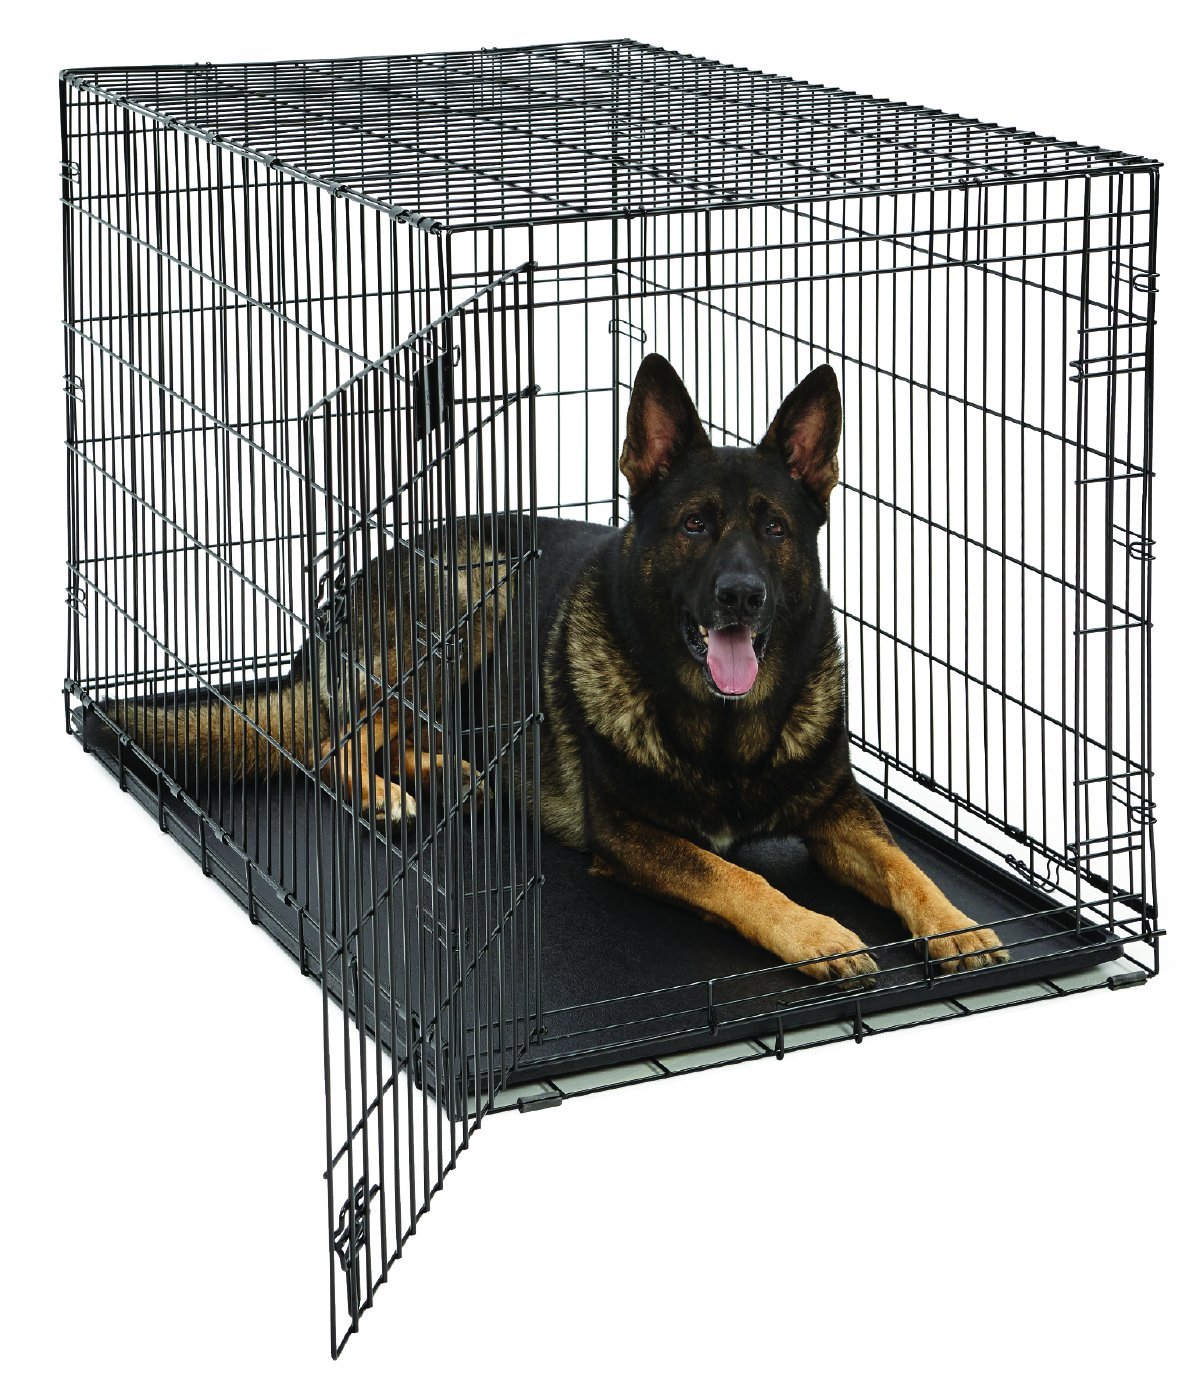 XL Dog Crate | MidWest Life Stages Folding Metal Dog Crate | Divider Panel, Floor Protecting Feet, Leak-Proof Dog Tray | 48L x 30W x 33H Inches, XL Dog Breed by MidWest Homes for Pets